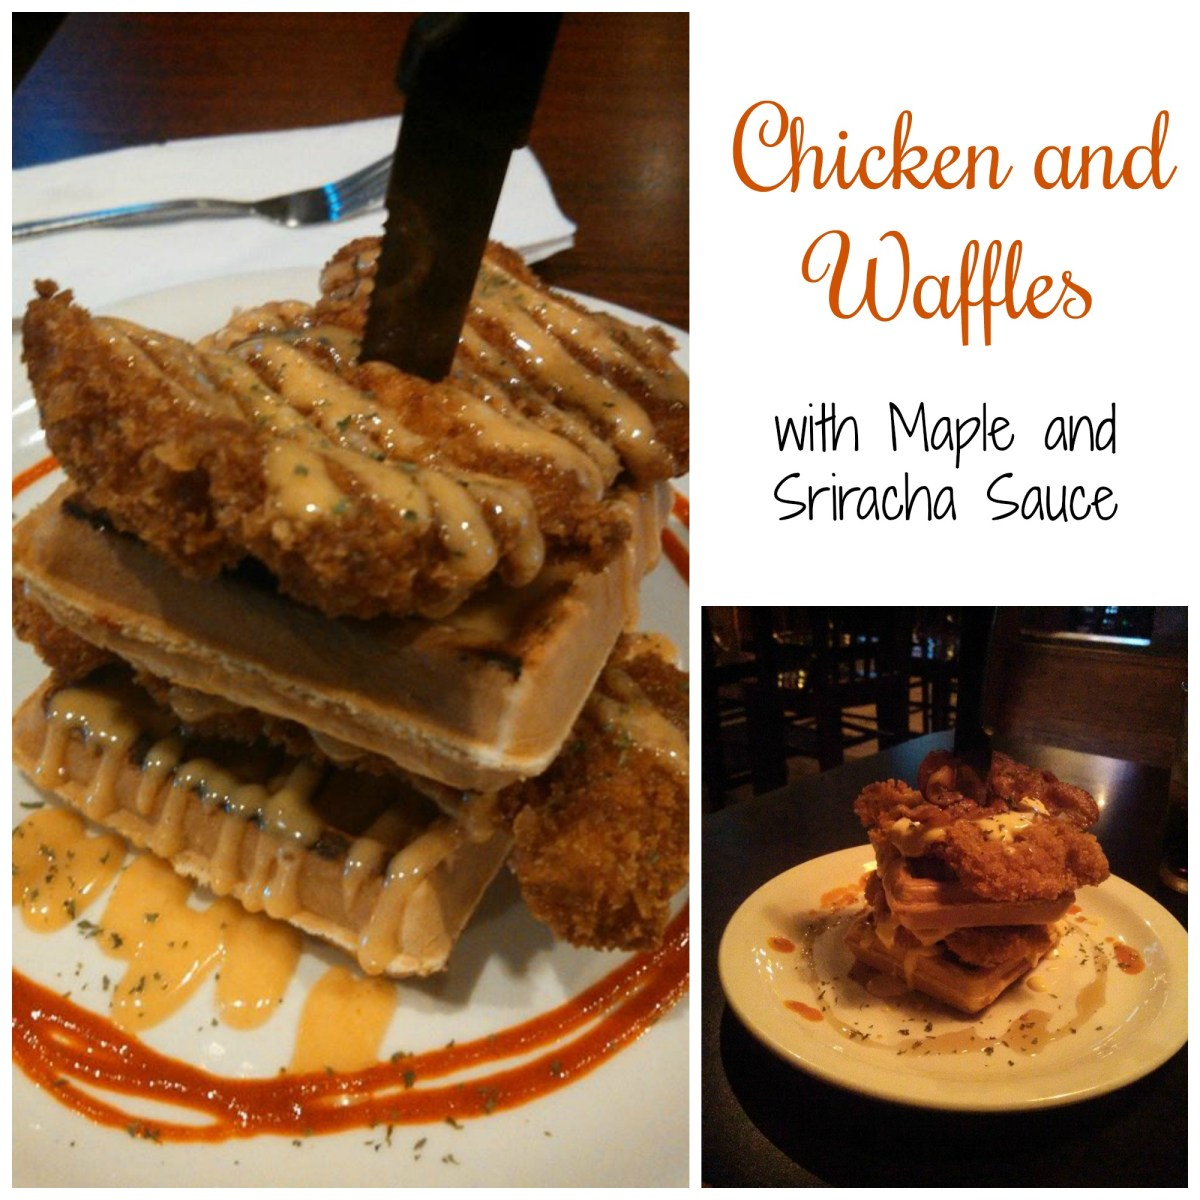 Chicken and Waffles with Maple and Sriracha for Brunch